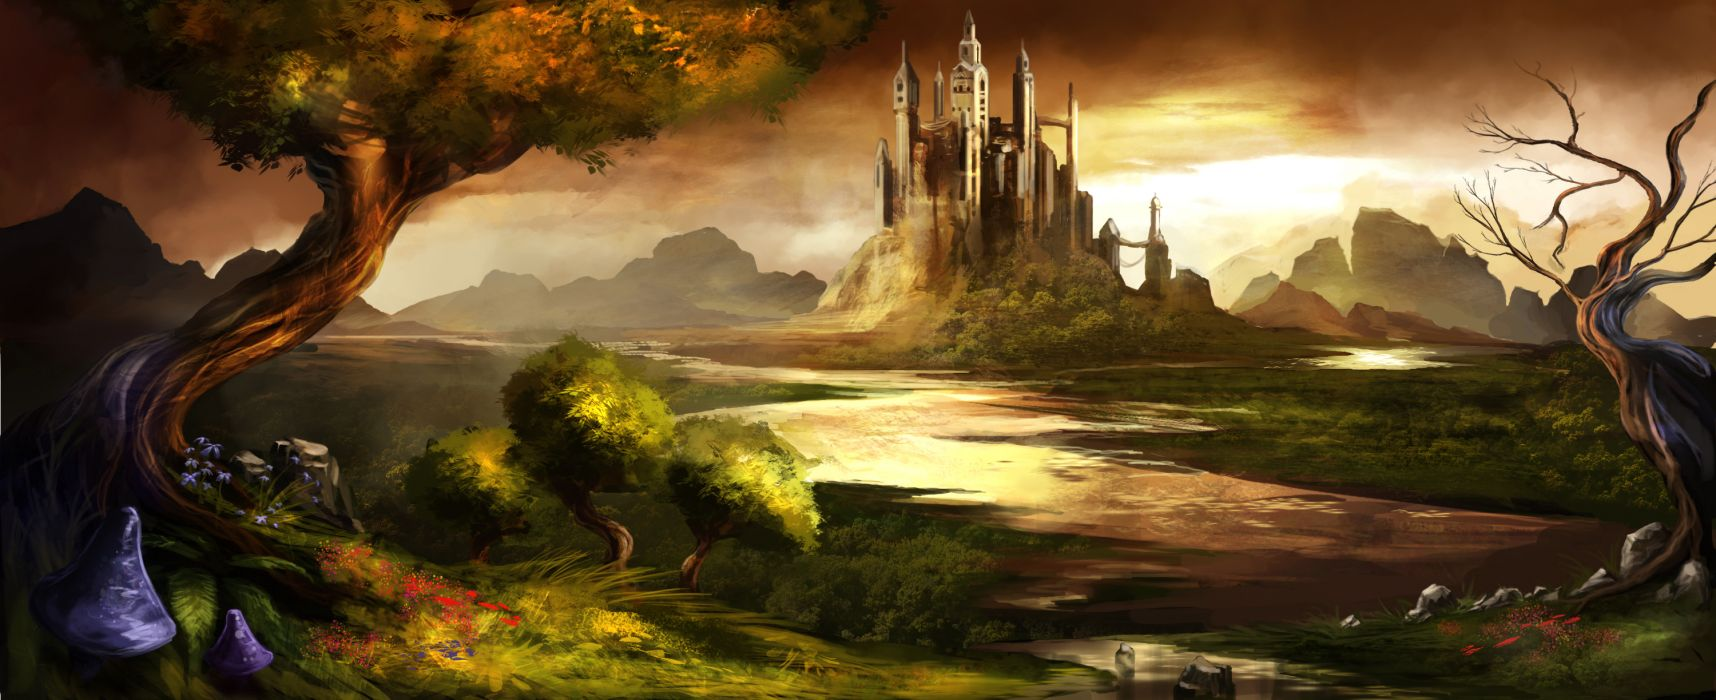 Landscapes castles trees trine rivers skyscapes wallpaper